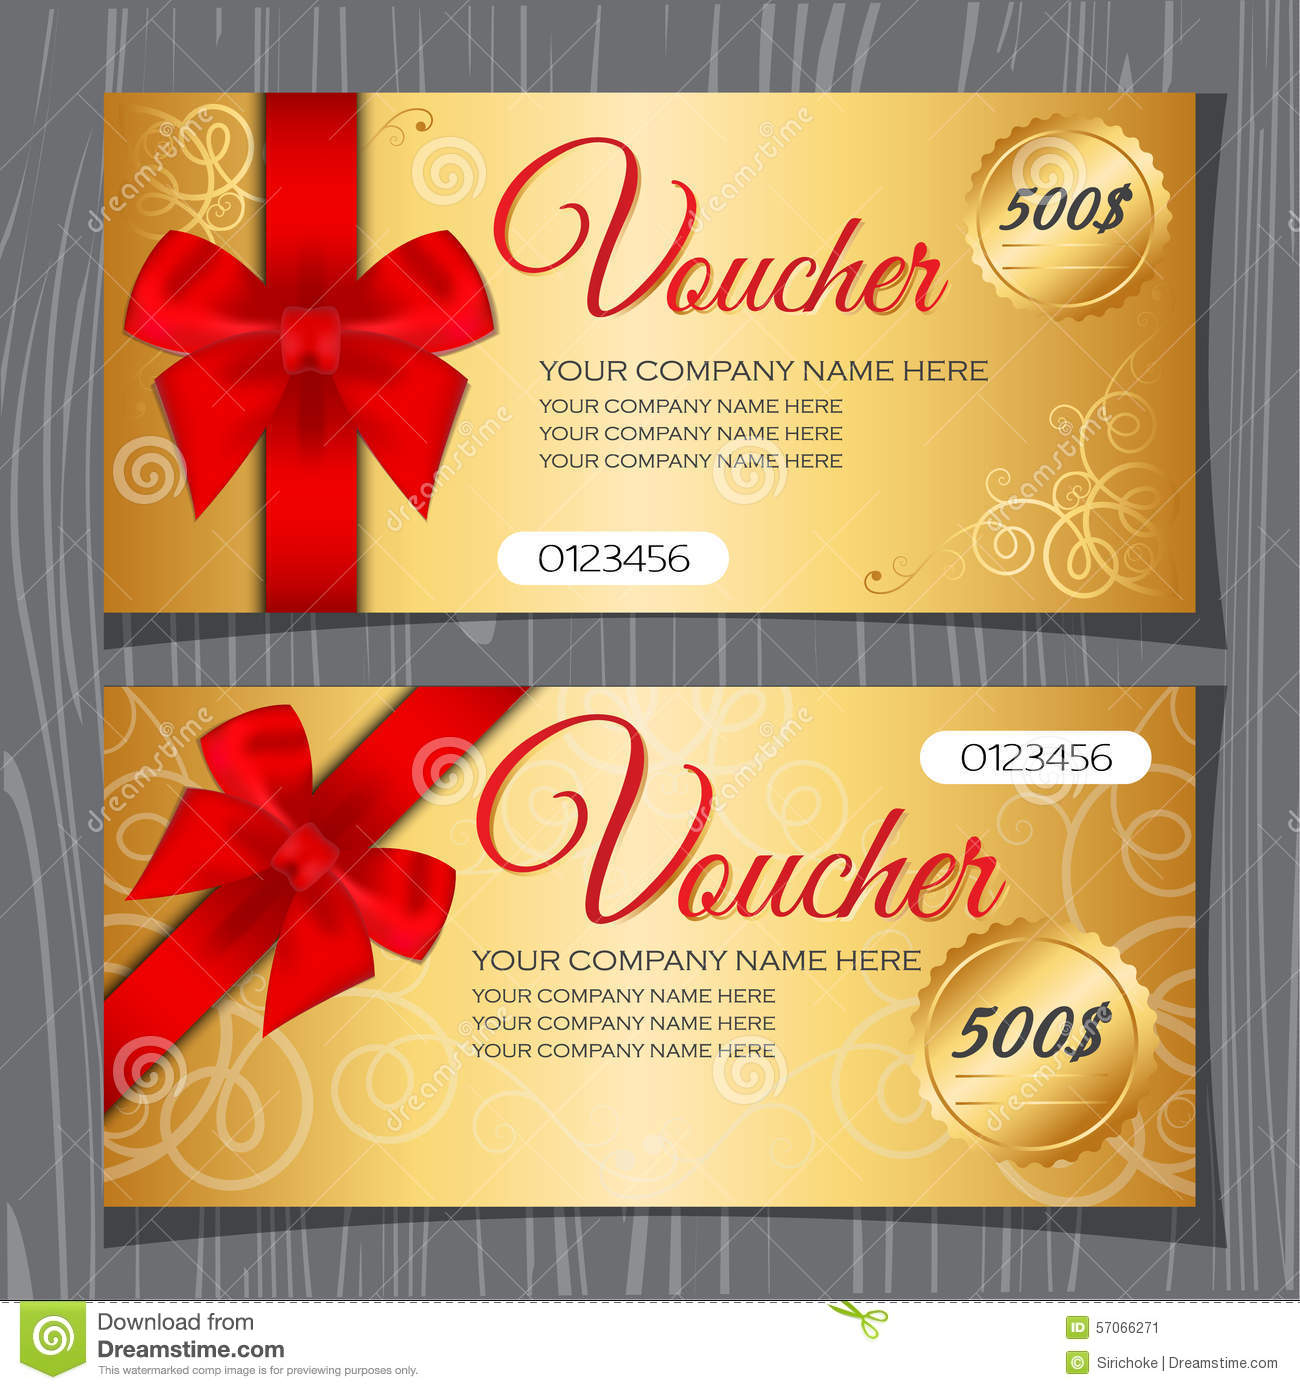 Voucher Template, Gift Certificate Stock Photo - Image: 57066271